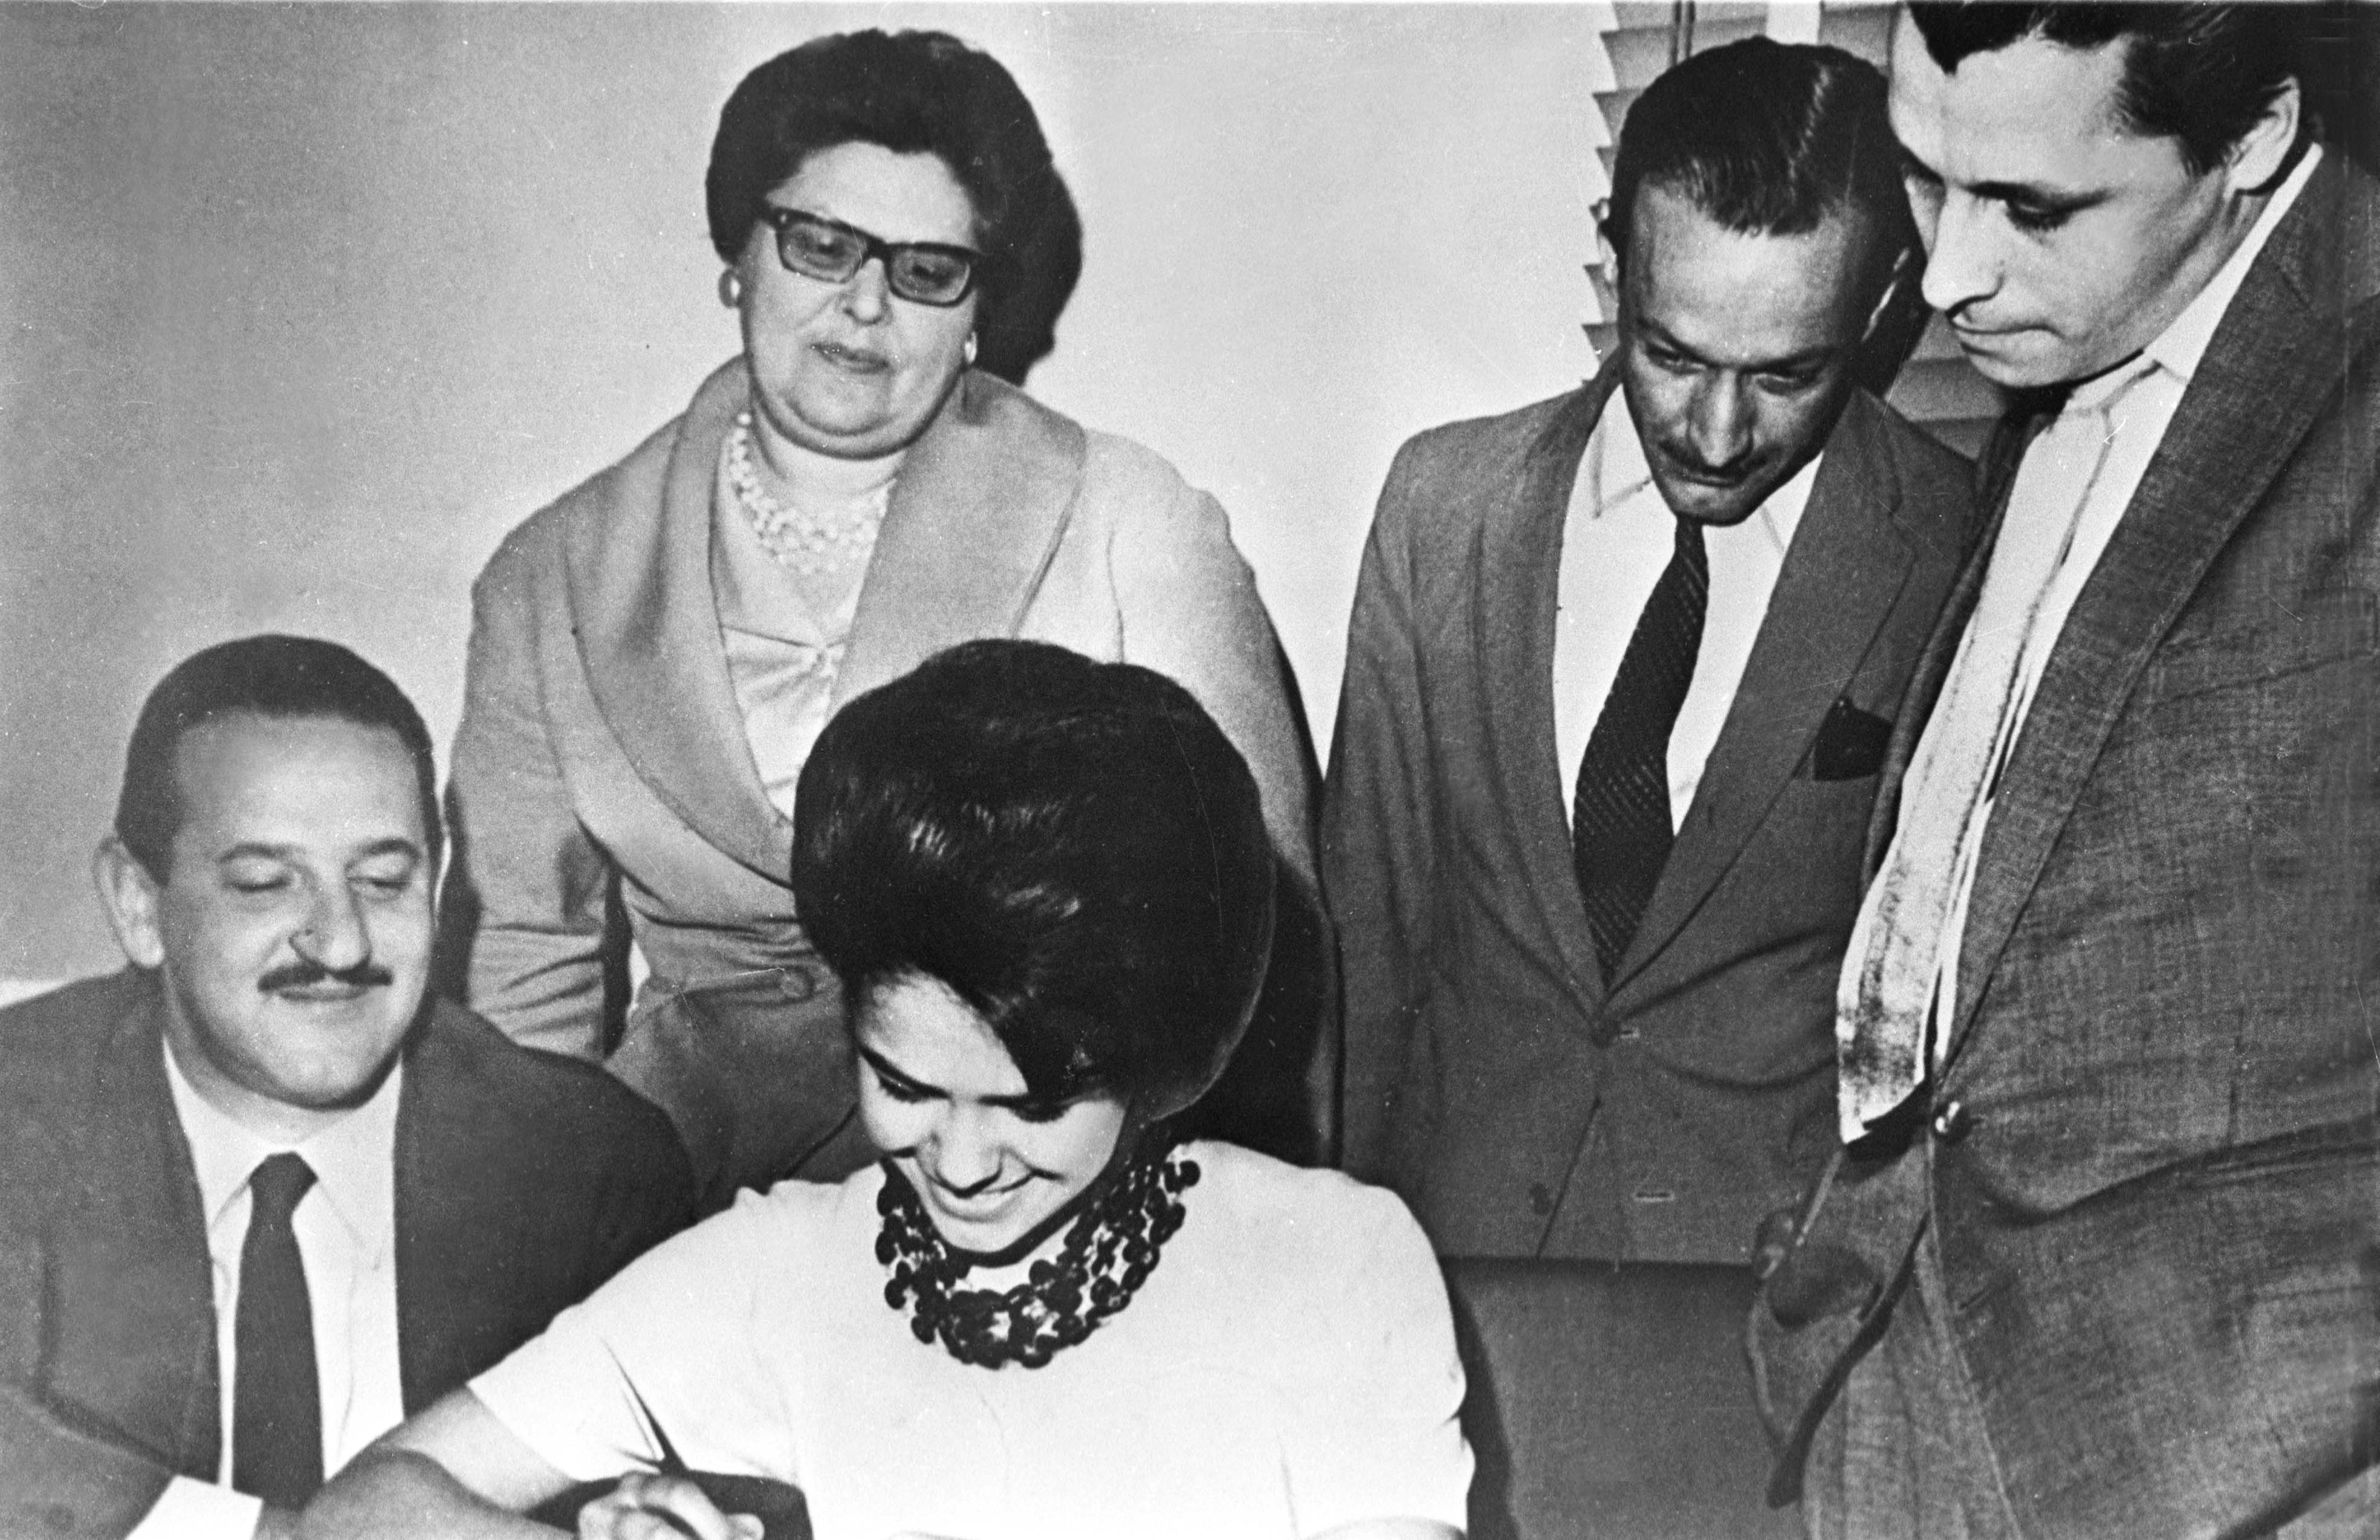 1959 - World famous singer Elis Regina, who was born in Rio Grande do Sul, signs the first employment contract of her career with Rádio Gaúcha.